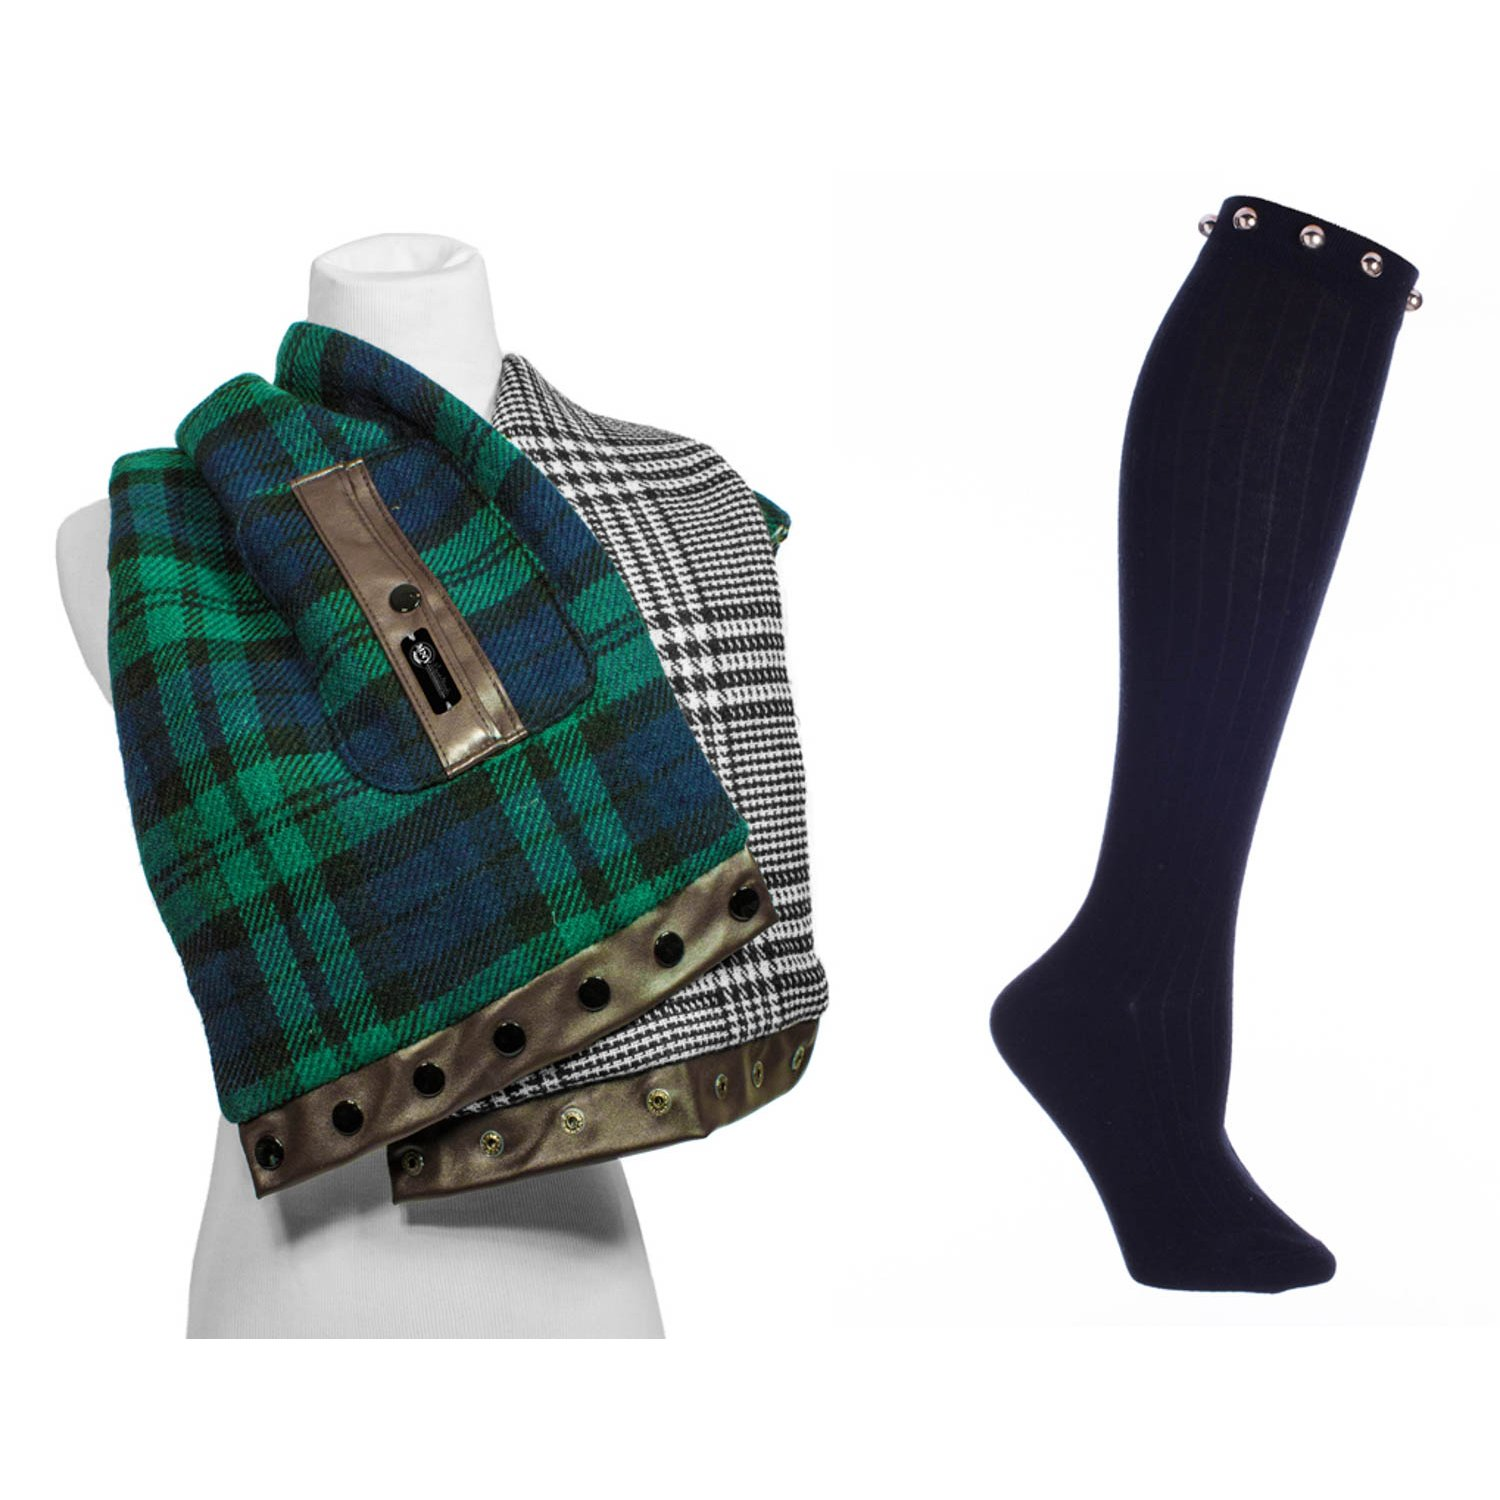 Women's Scarf-Reversible w/faux leather front pocket in Green Plaid and Knee High Boot Socks With Round Studs Black One size Fits Most By MinxNY